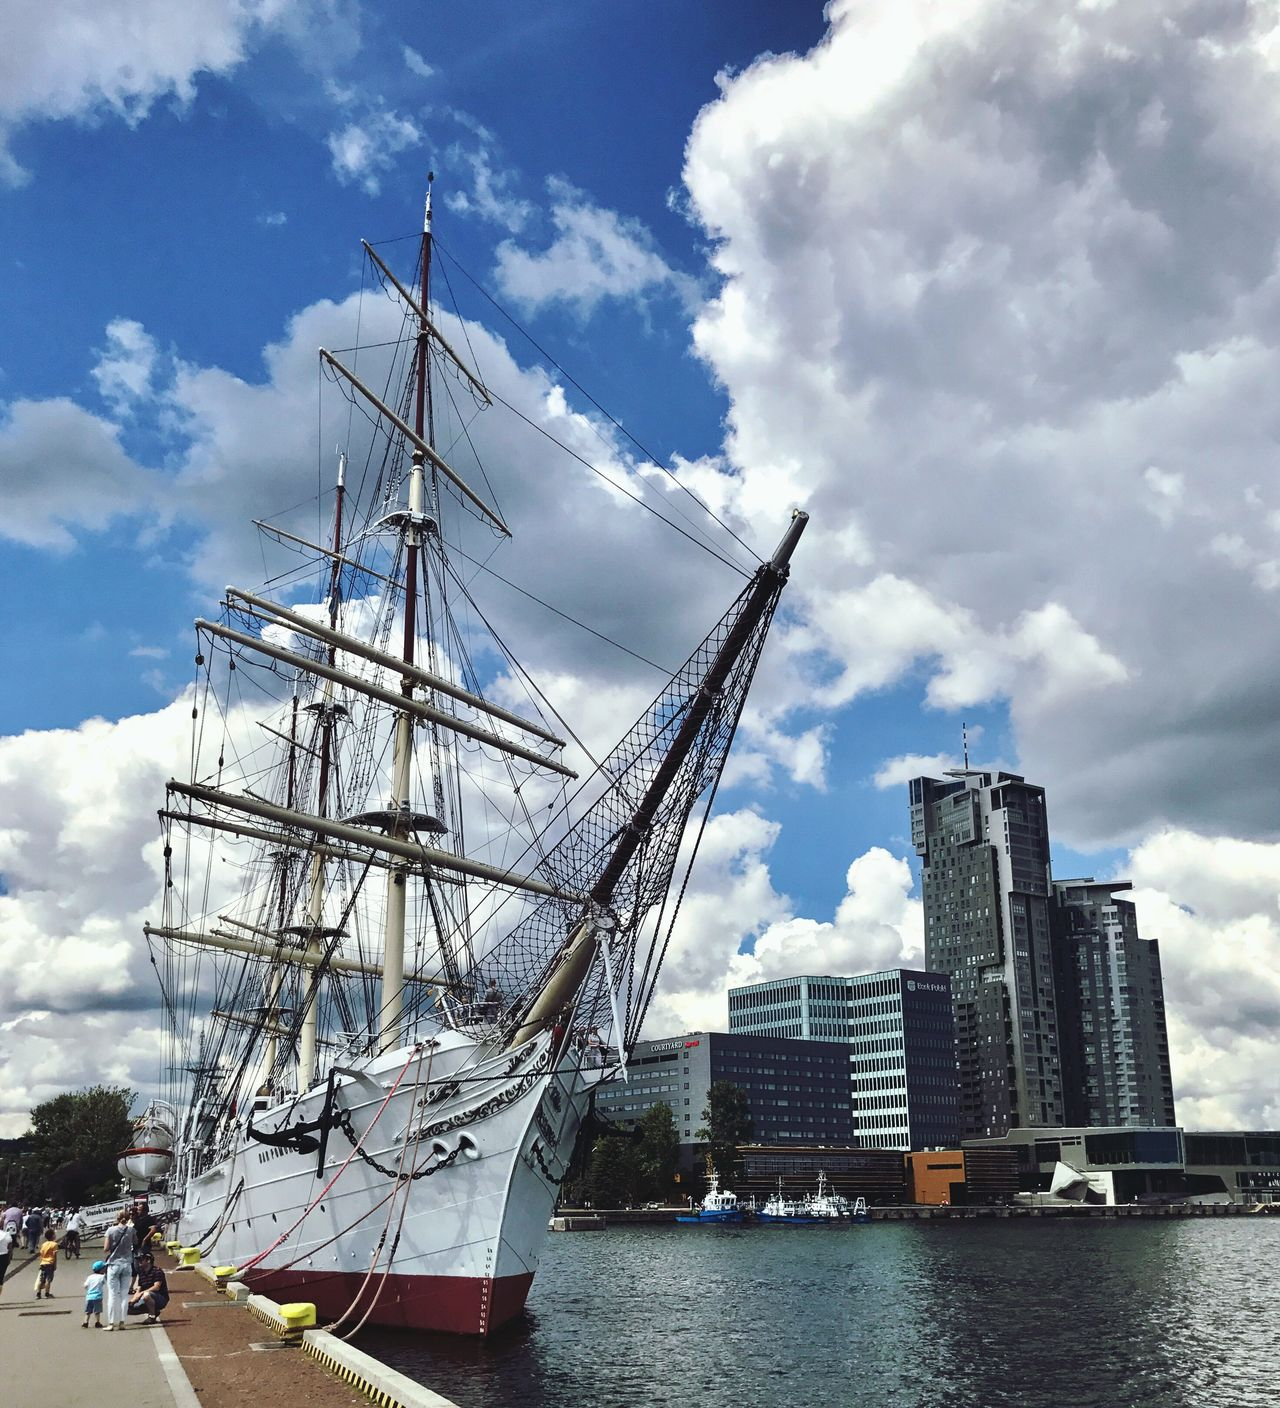 Cloud - Sky Sky Transportation Architecture Nautical Vessel Built Structure Day Mode Of Transport Building Exterior Water Outdoors Mast No People City Harbor Sea Tall Ship Sailing Ship EyeEm Selects Shotoniphone7plus